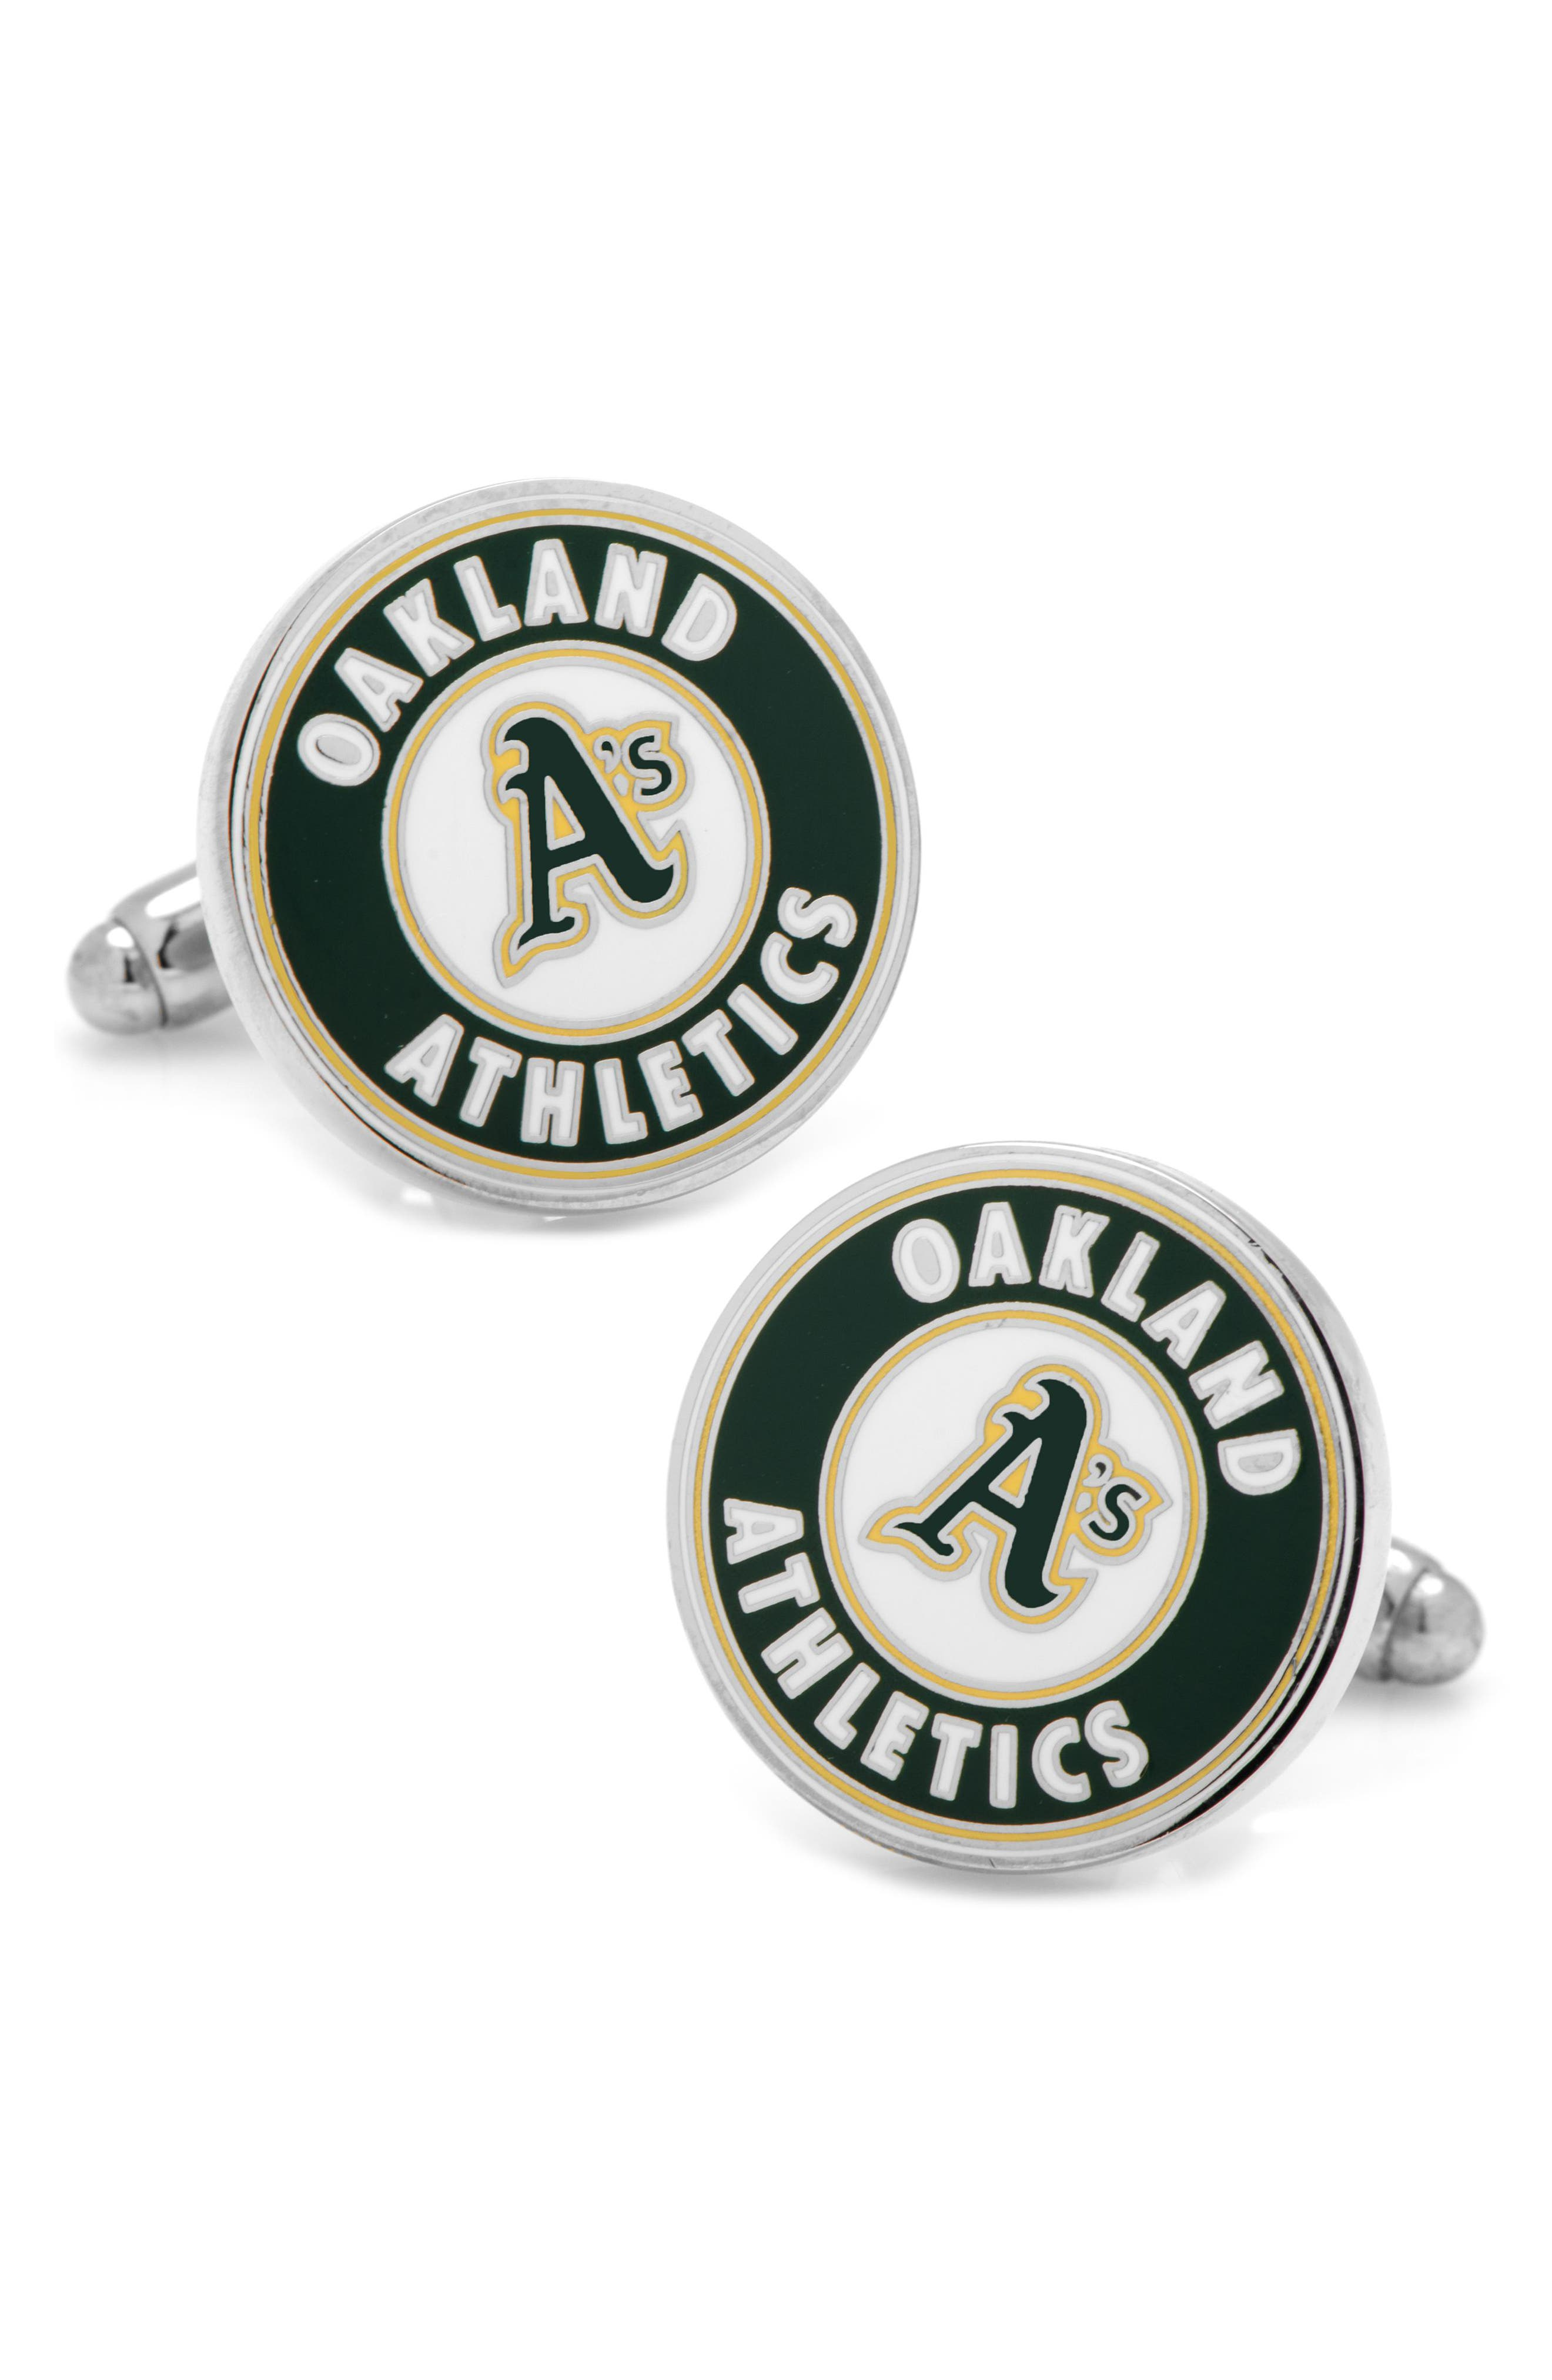 Oakland Athletics Cuff Links,                             Main thumbnail 1, color,                             Green